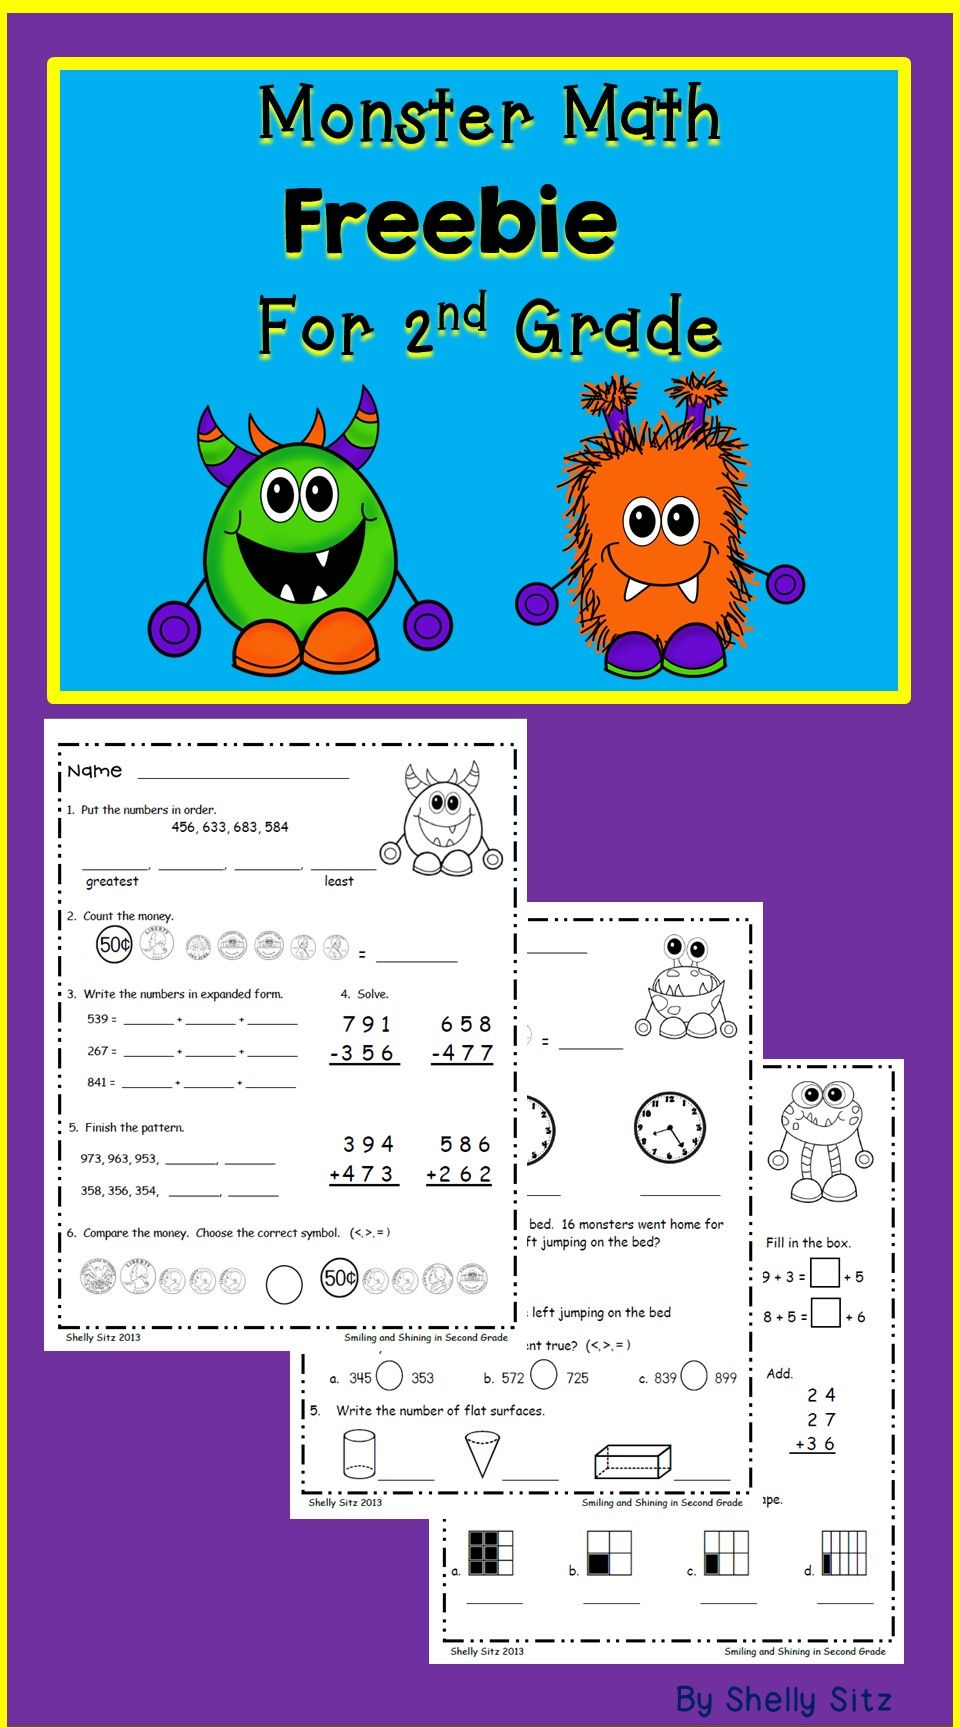 Worksheet Math Homework 2nd Grade 1000 images about second grade worksheets and homework on pinterest mental maths math telling time